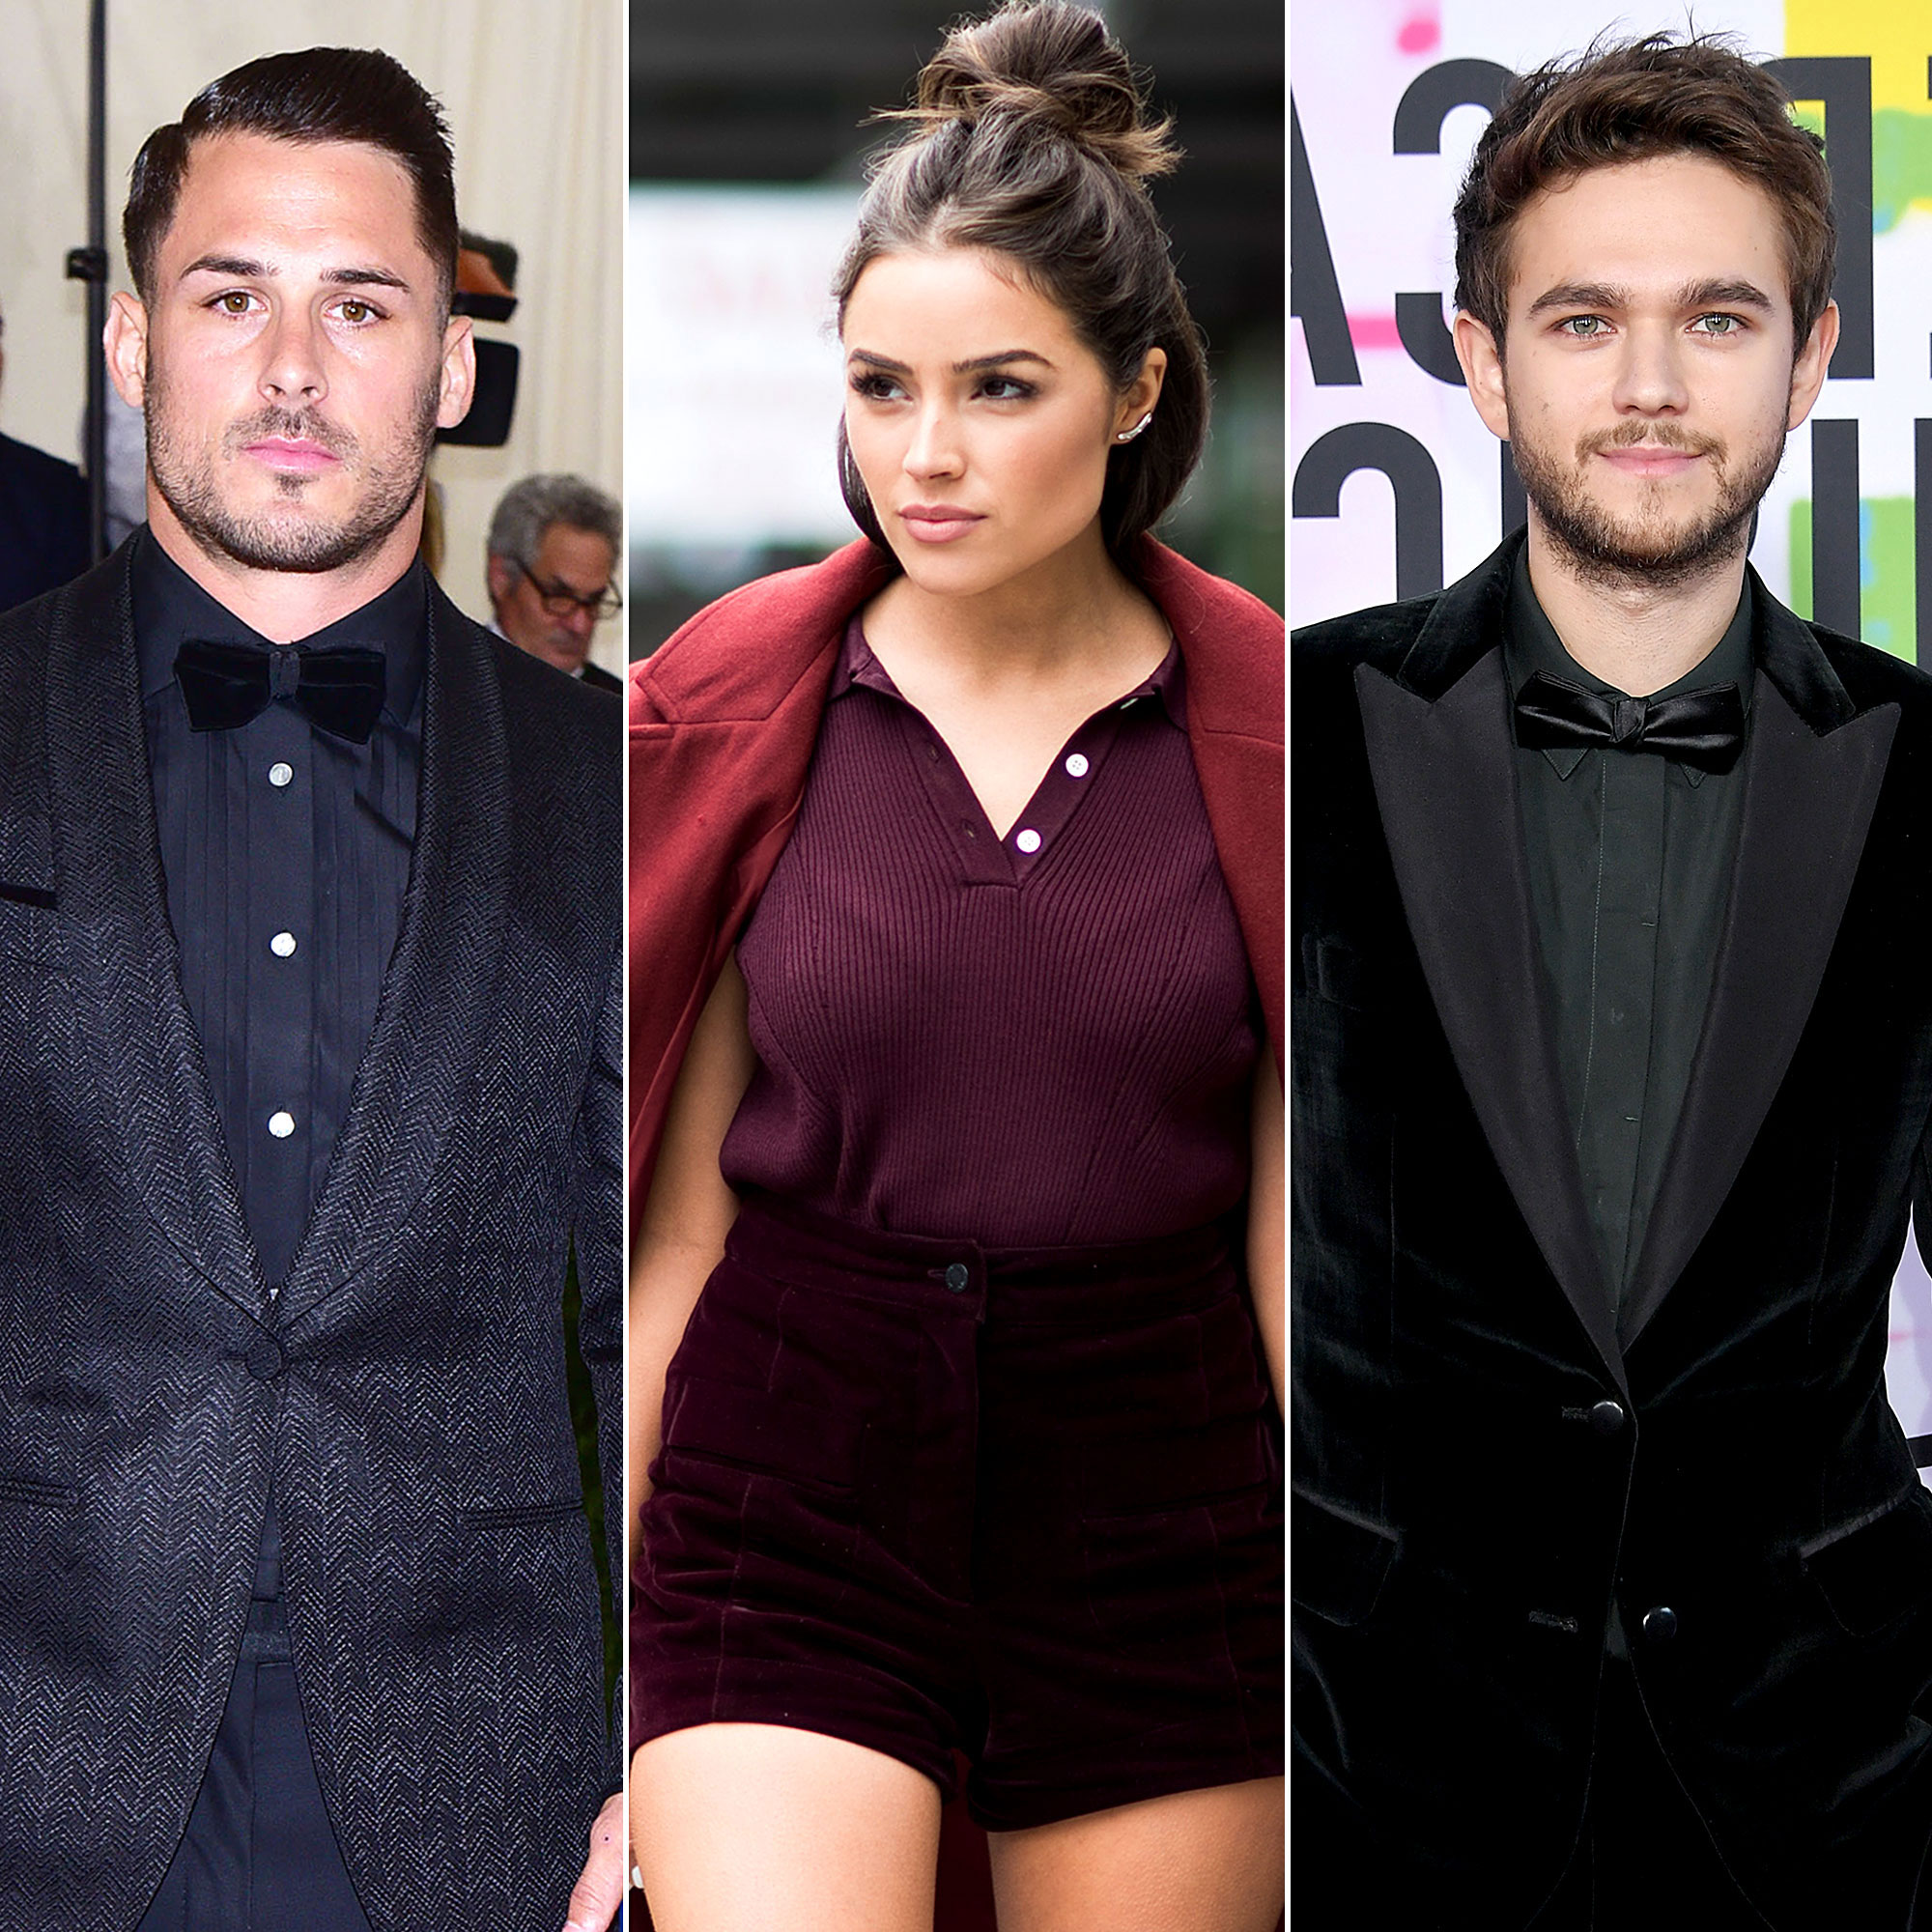 Danny Amendola Mad Insecure Olivia Culpo Zedd Coachella 2019 - The former Miss Universe's presence — and moment with Zedd — sparked drama after Culpo's on-off boyfriend Danny Amendola saw a video of the twosome dancing at Coachella. After the NFL player went on a lengthy rant trashing the model, a source told Us that Amendola was jealous.